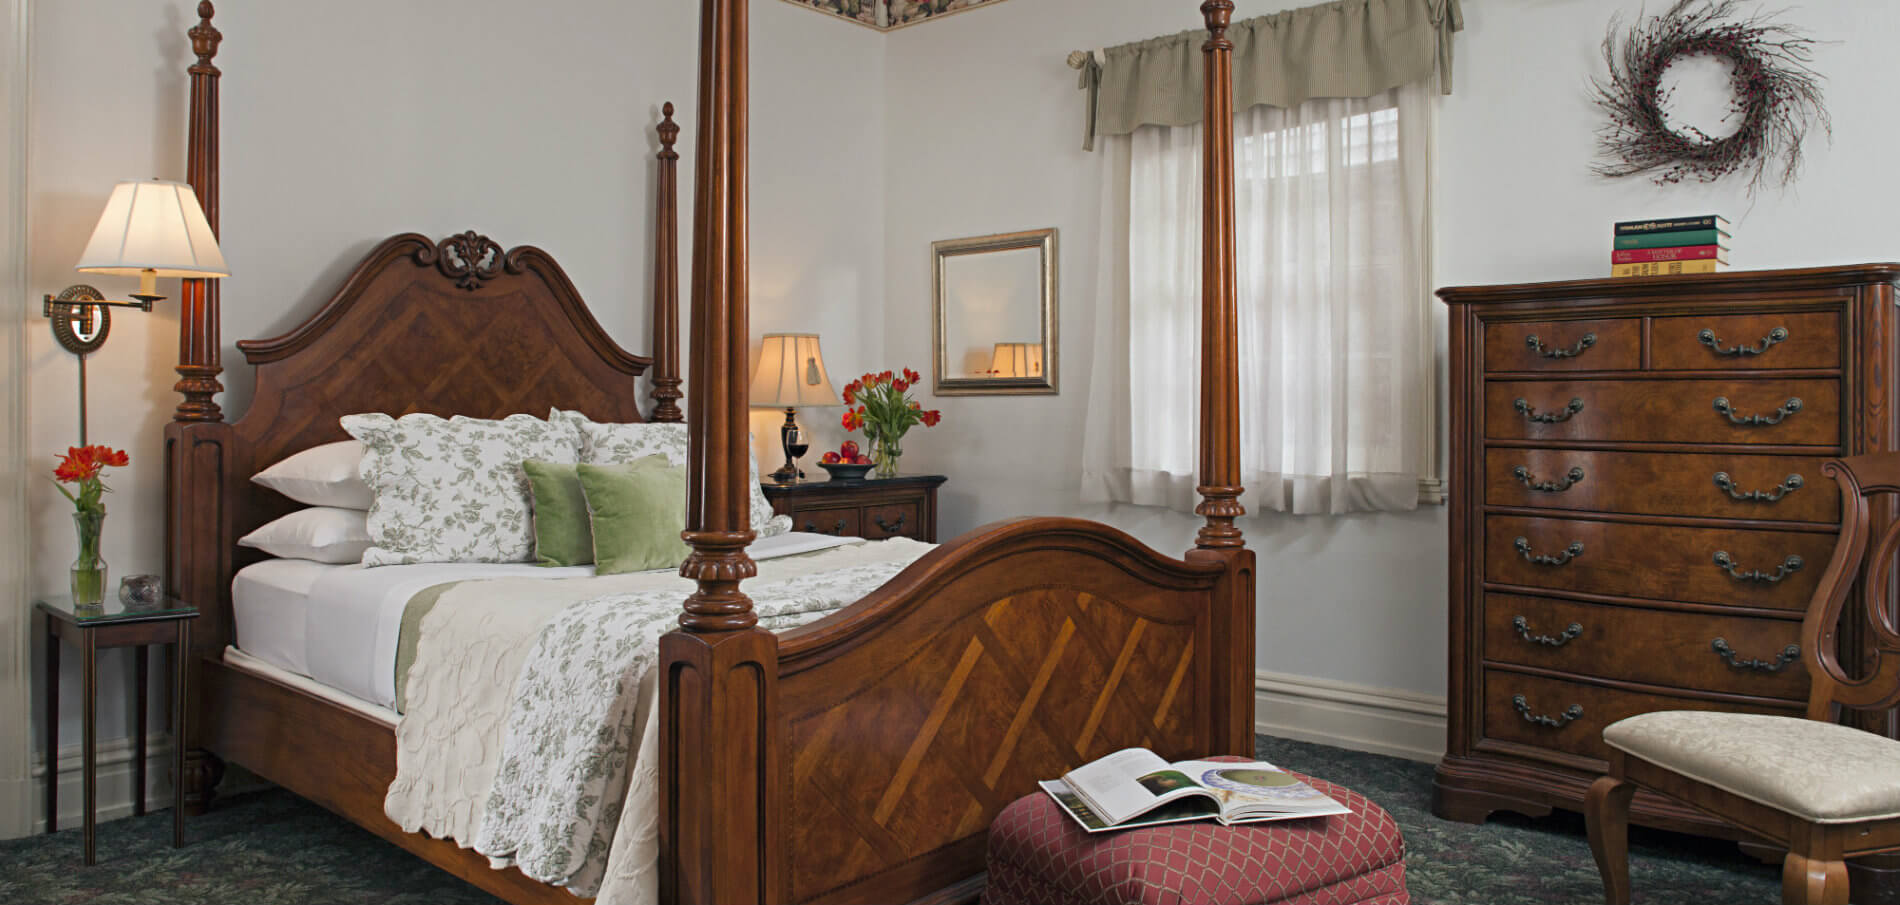 wood four poster bed with white and soft green linens, red flowers on nightstands on both sides, ottoman at foot of bed with open book, tall chest of drawers to right of bed